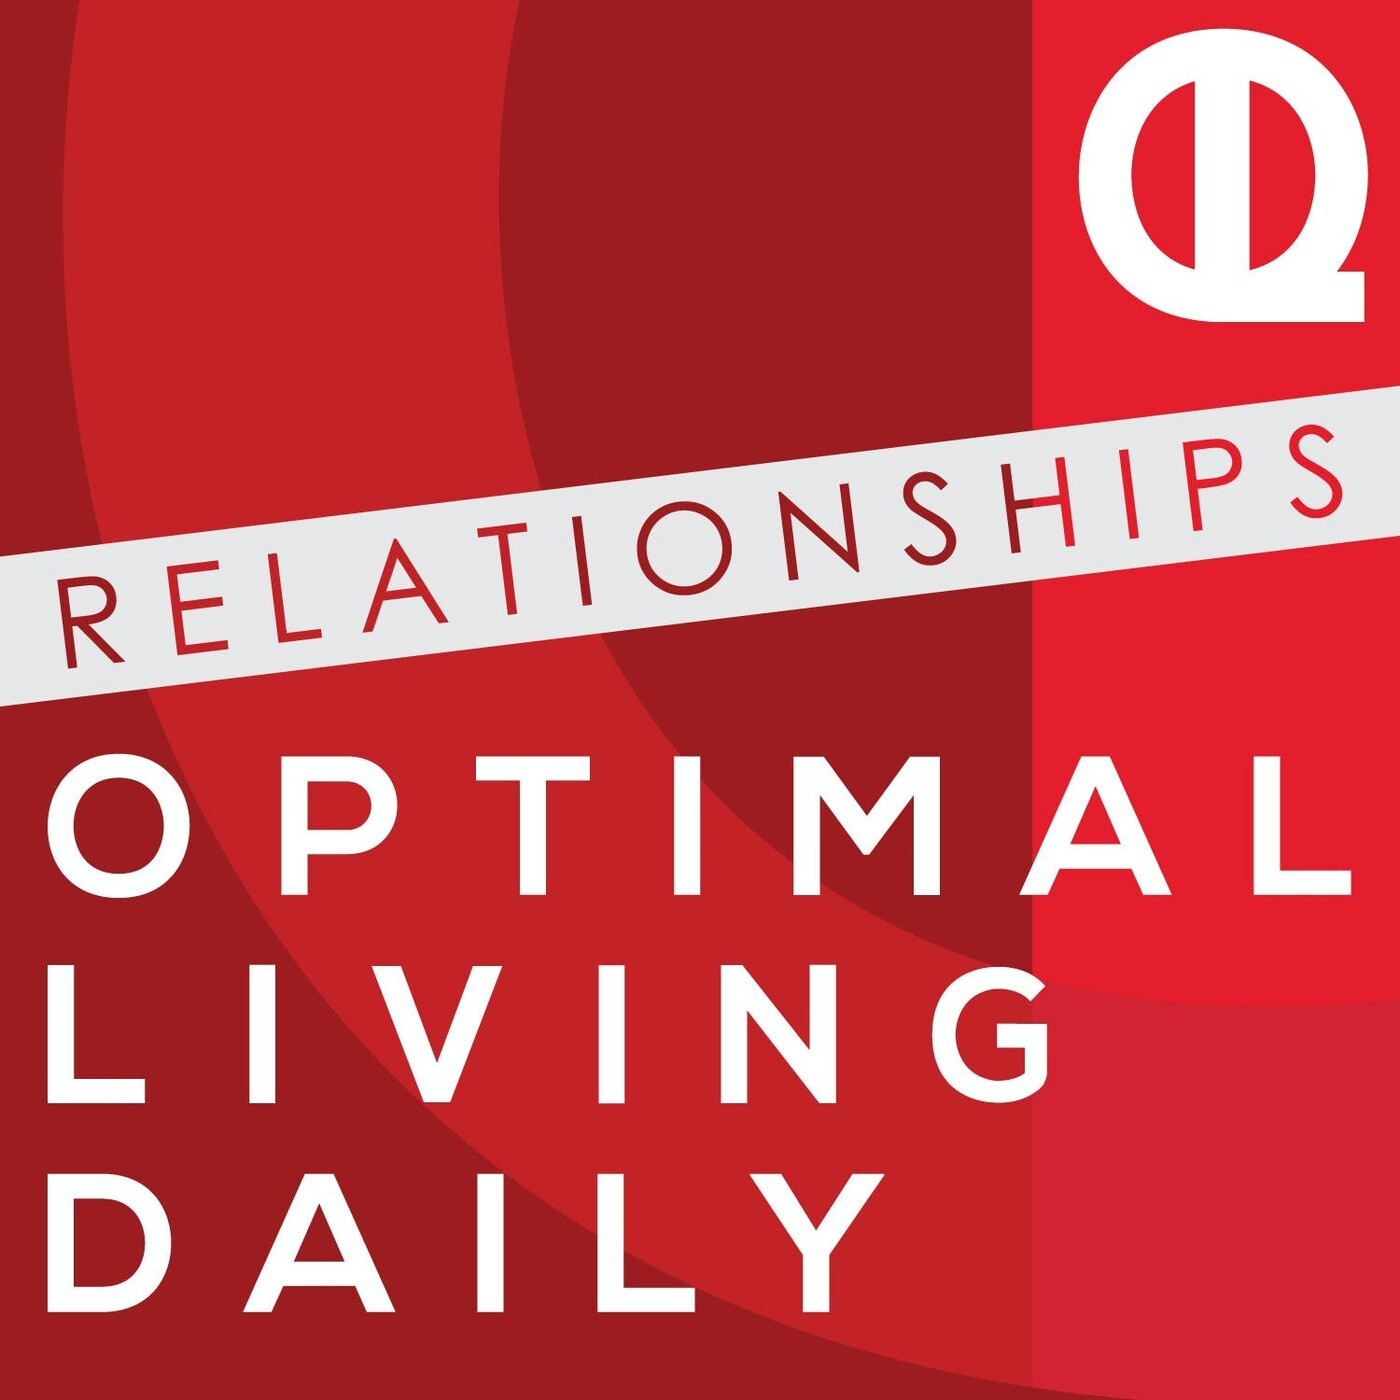 812: 5 Interesting Ways to Tell if Your Crush is Secretly into You by Dr. James Stein with Luvze on Dating Cues